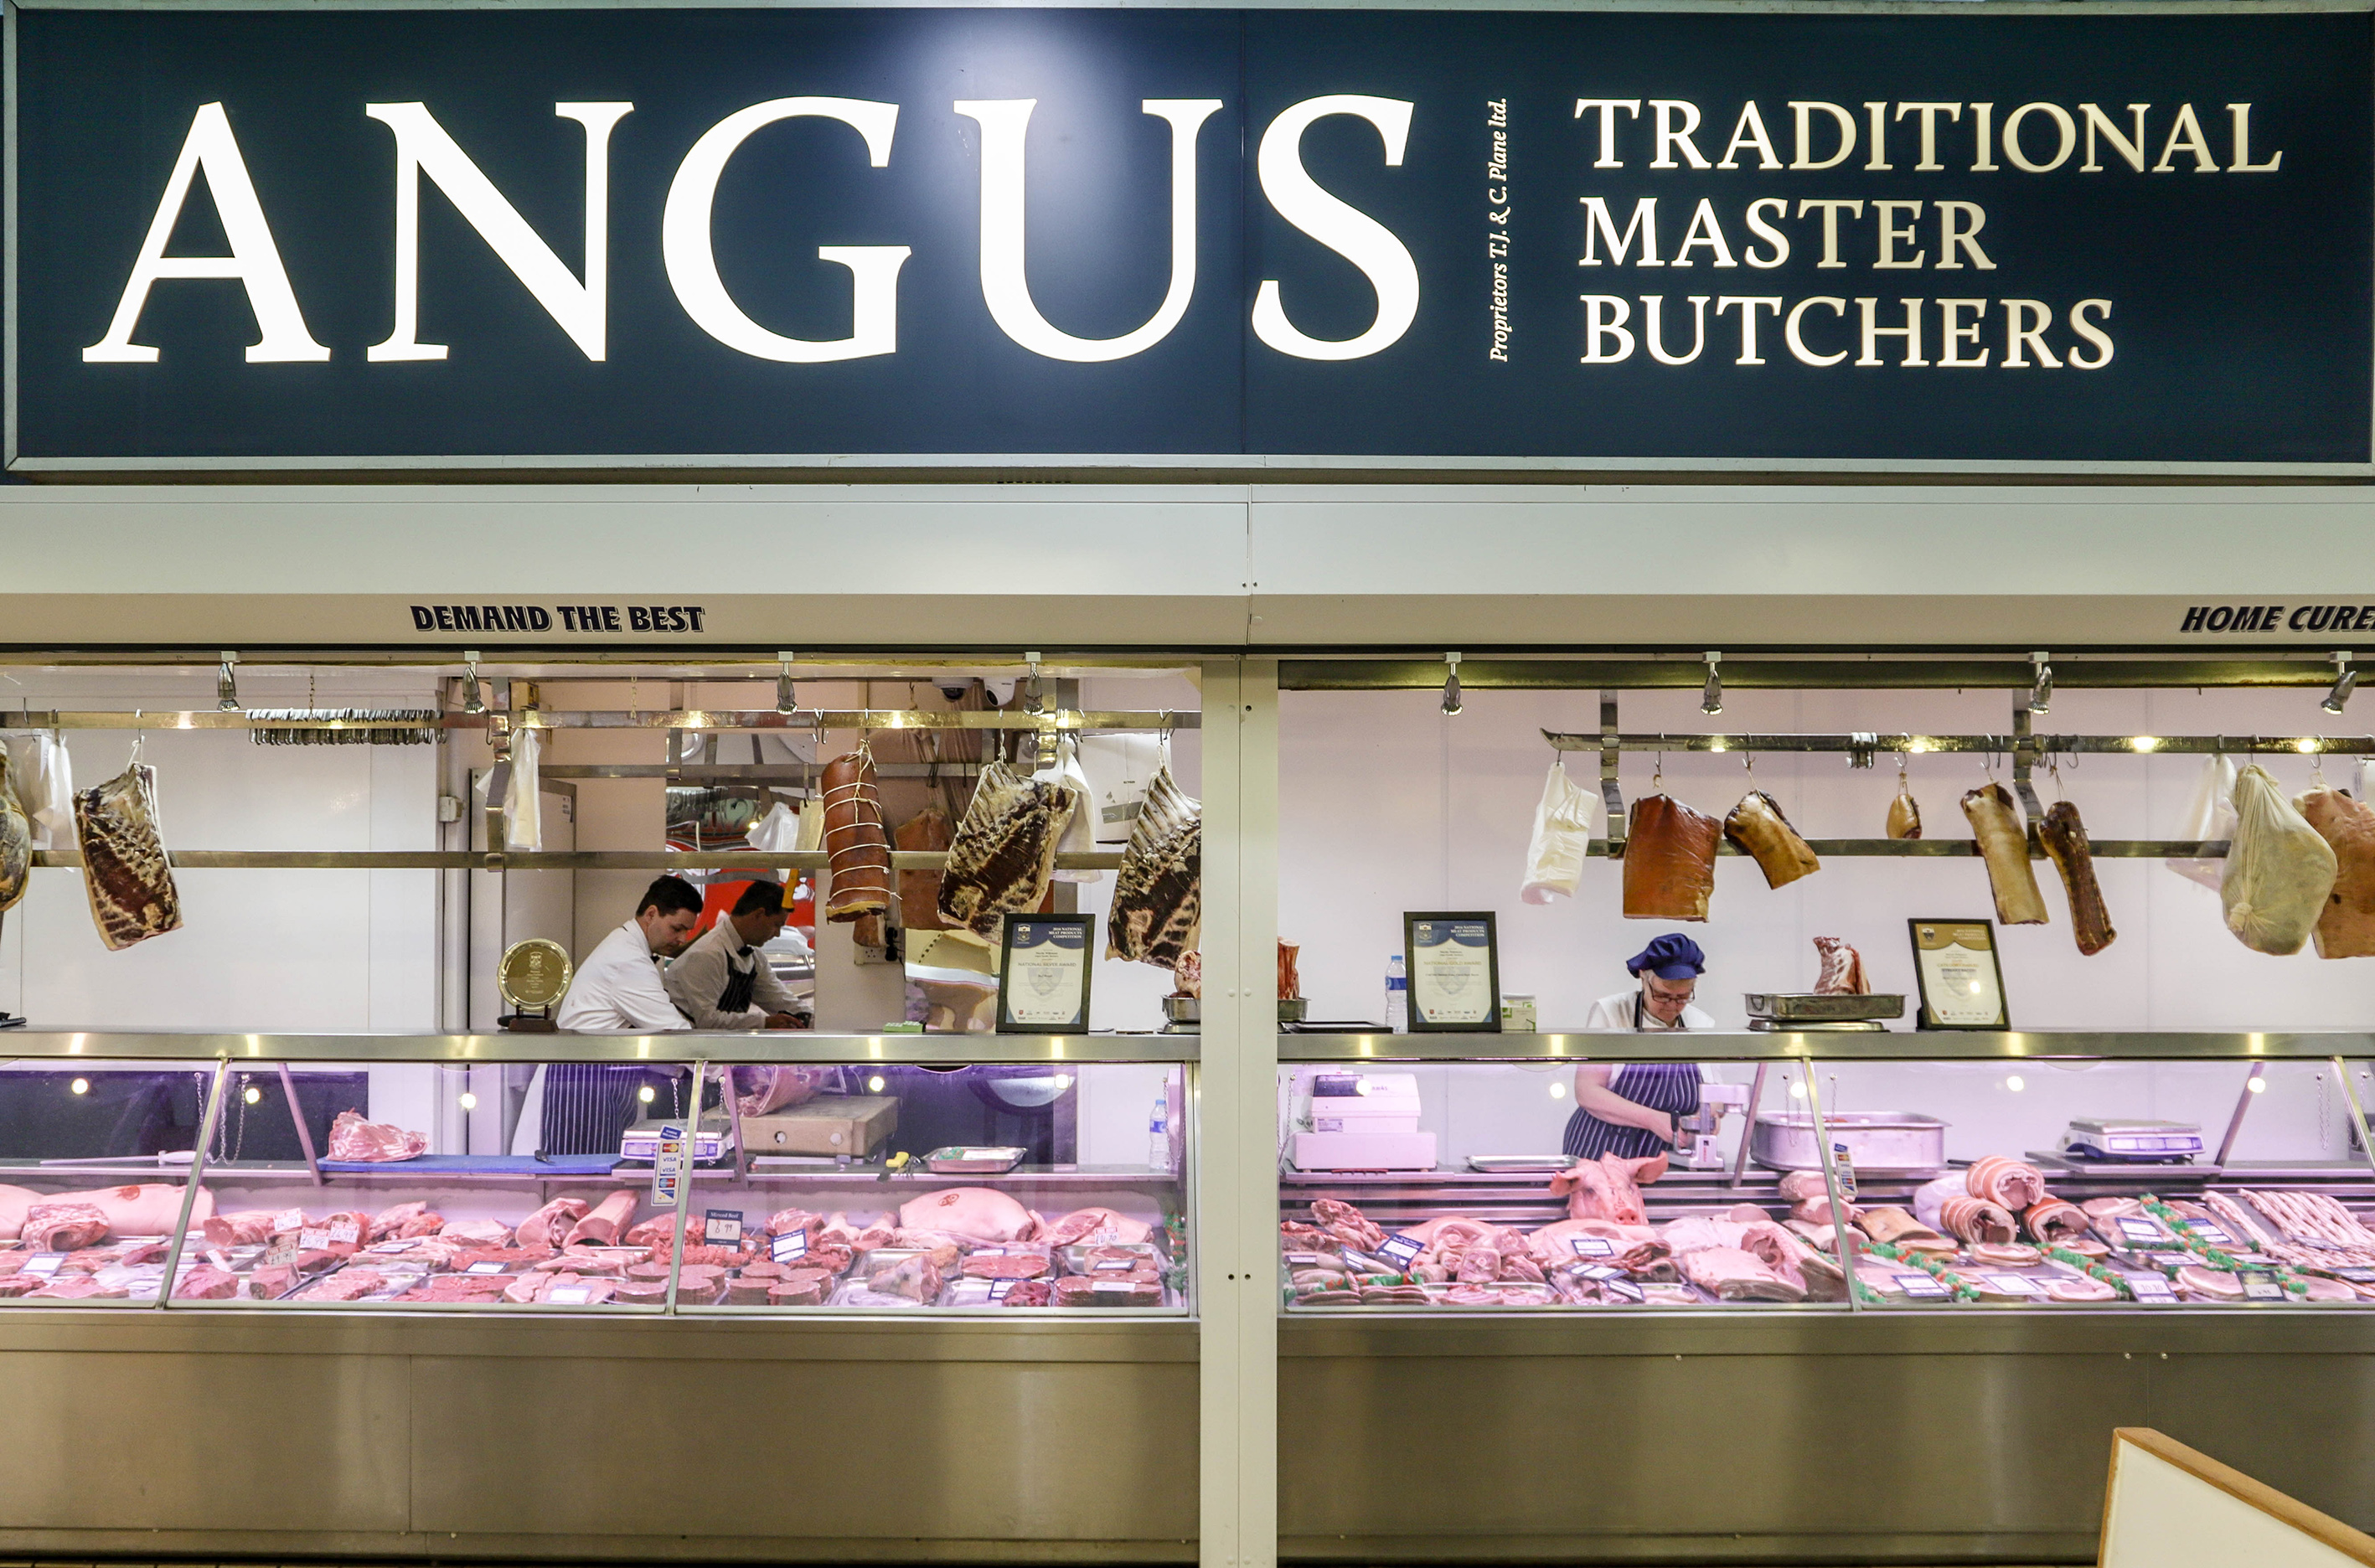 Angus butchers